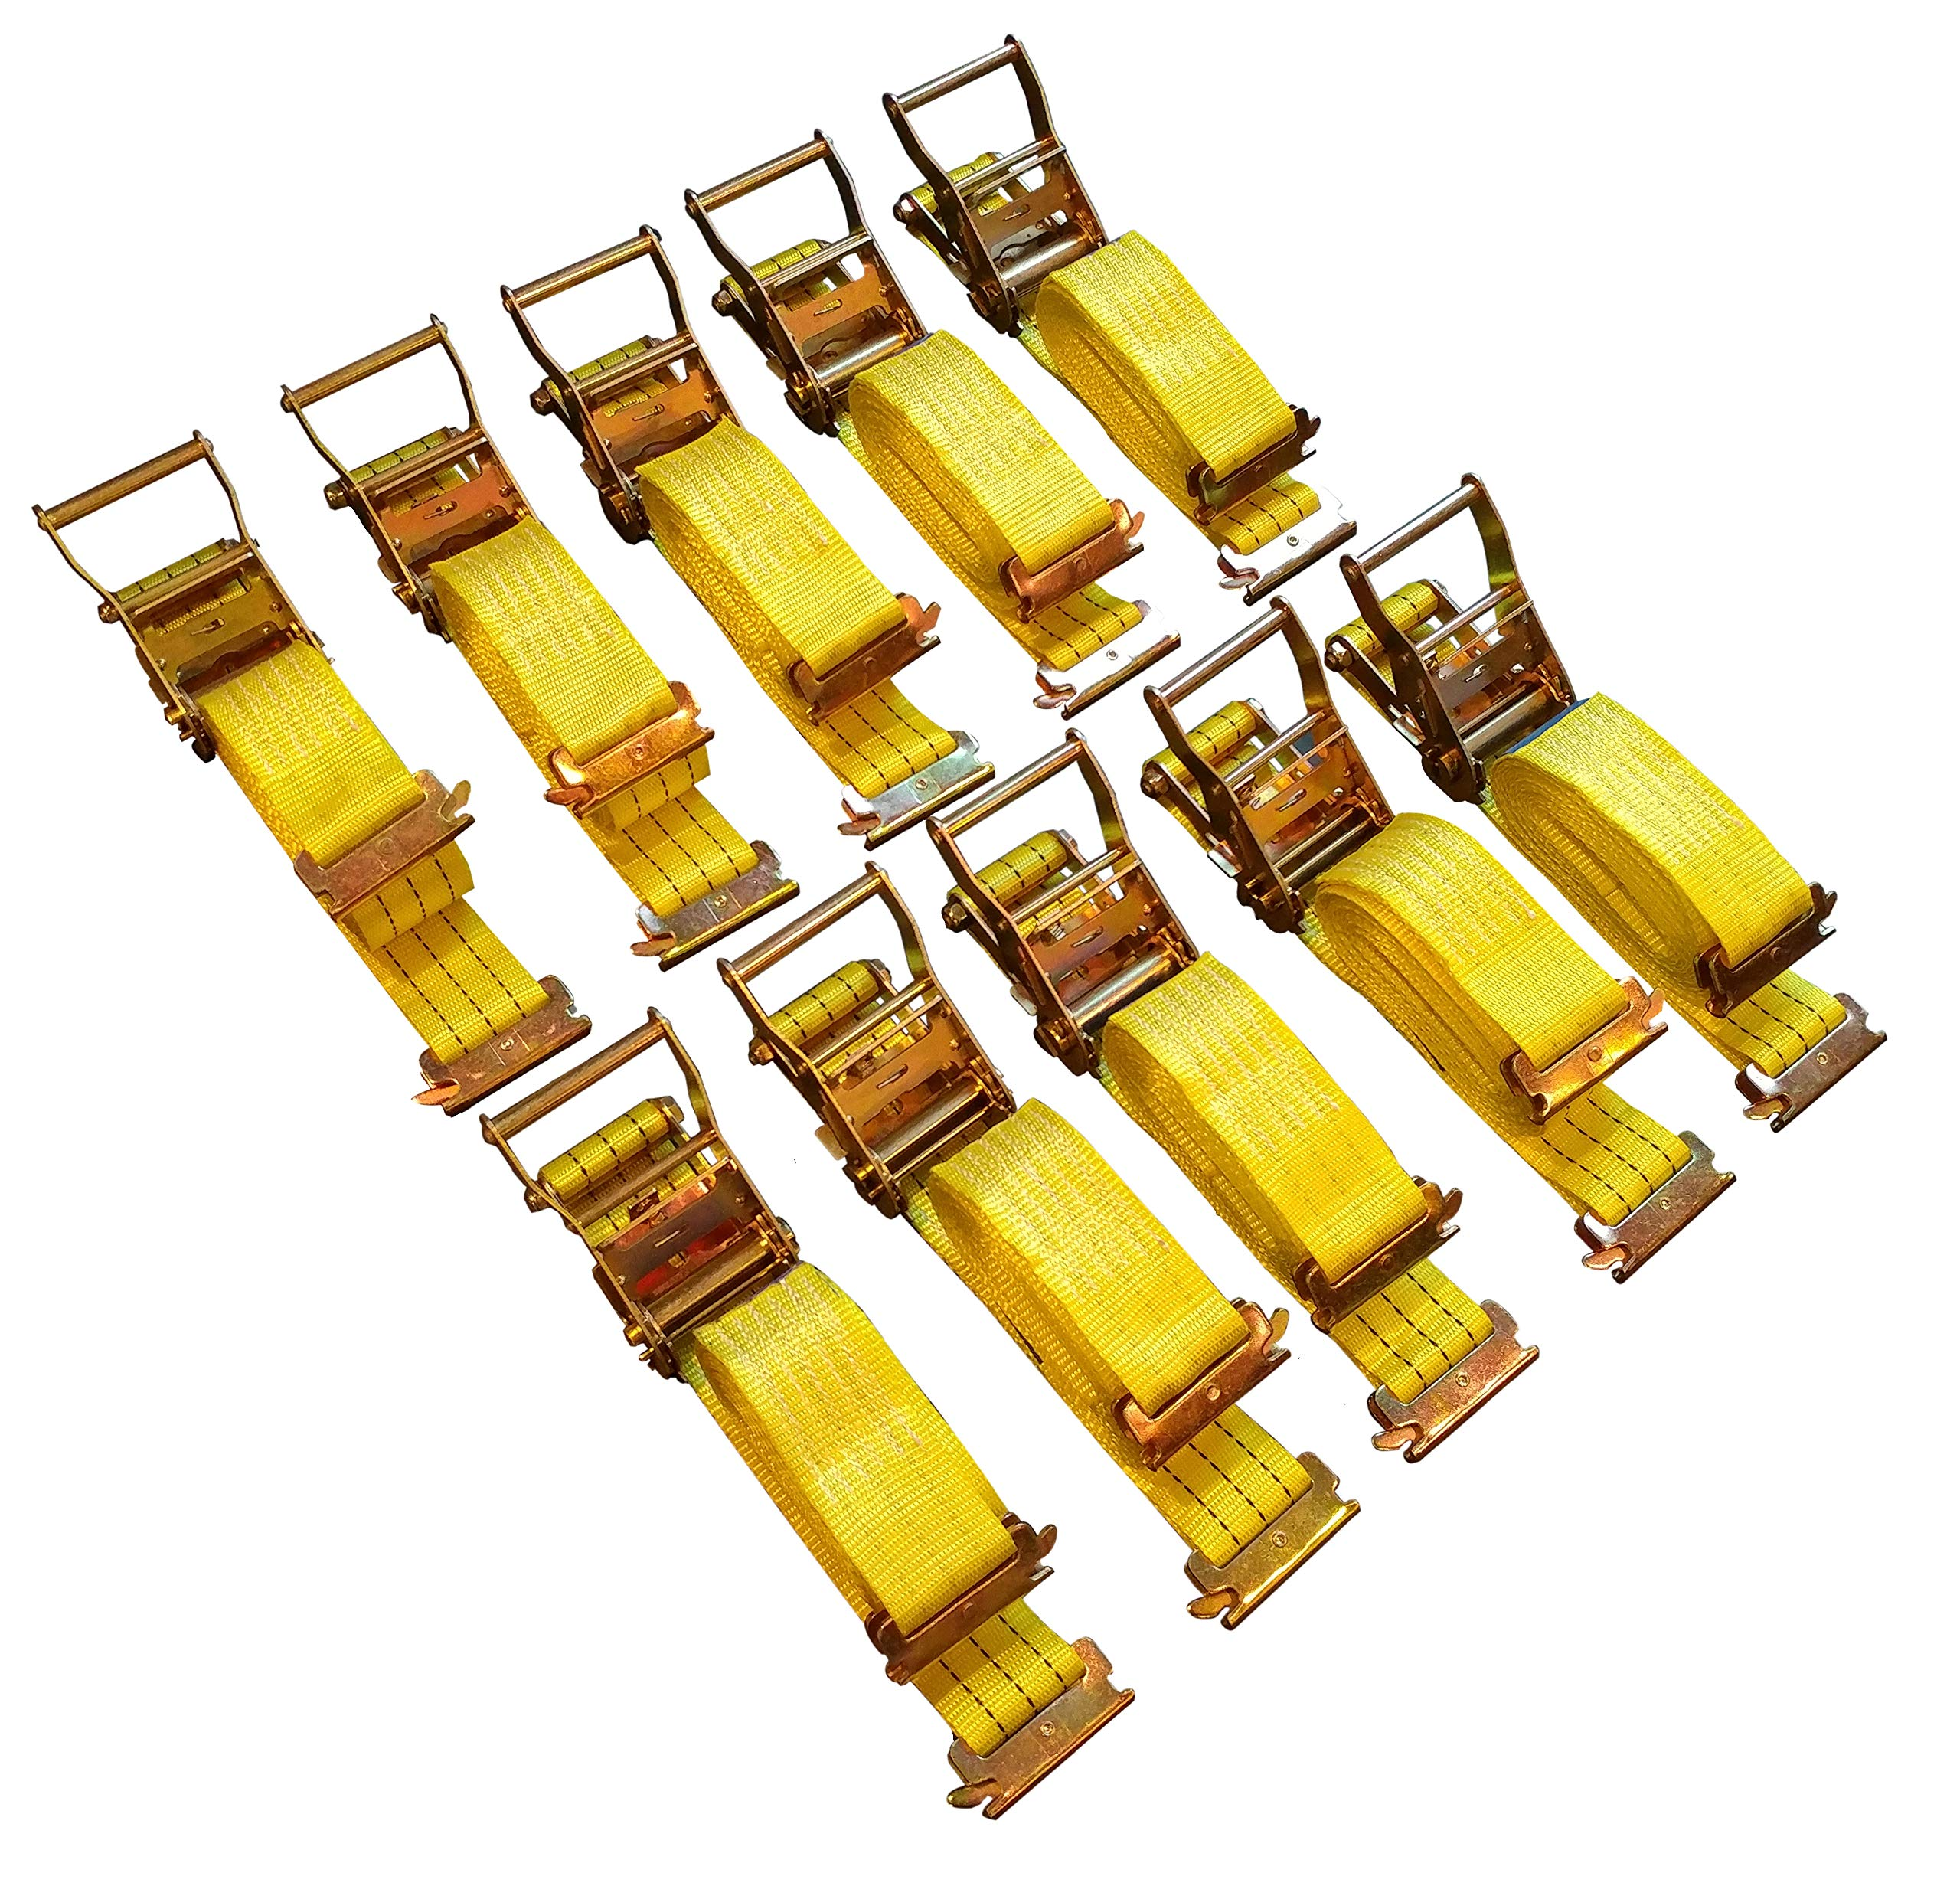 10 Pack E-Track Ratchet Straps 2''x15' 4400 lbs Tie Down by Cargo Control